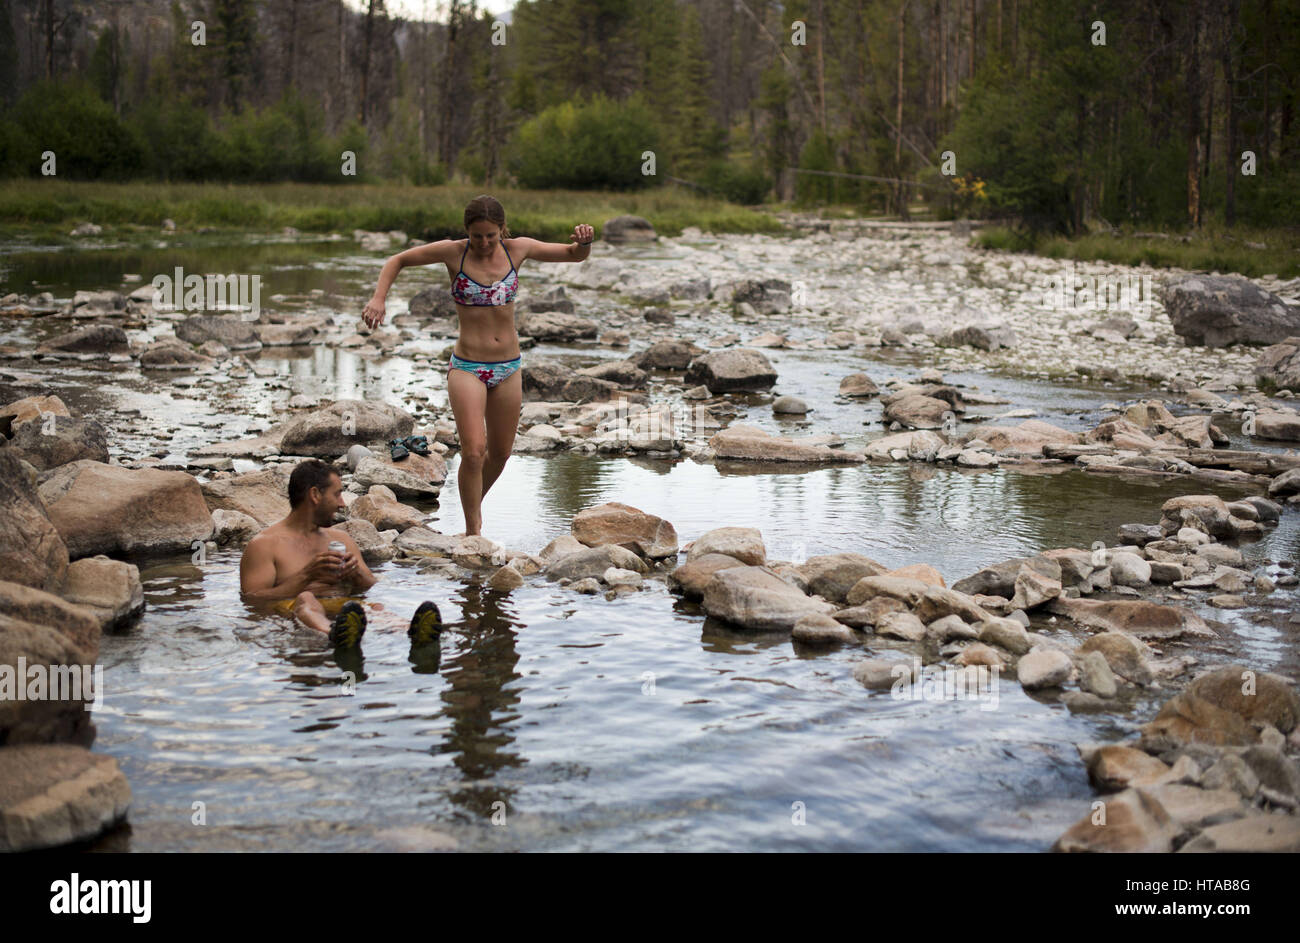 July 30, 2013 - Idaho, USA - Hot spring session with bikini and board shorts.A large group of friends take rafts, - Stock Image